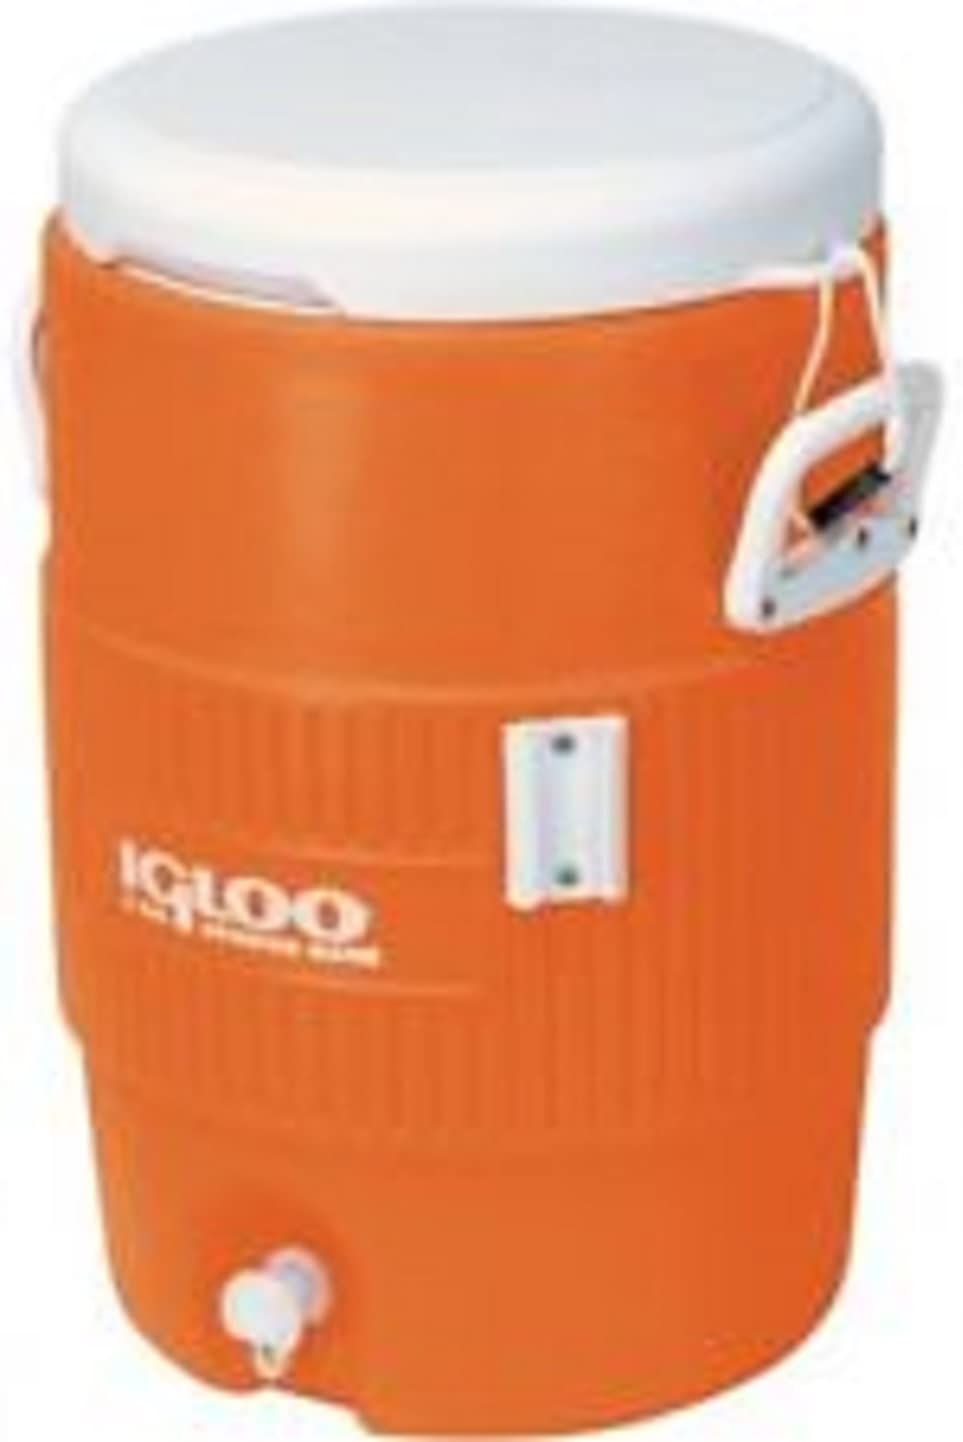 Igloo 5-Gallon Heavy-Duty Beverage Cooler, Orange (5-Gallon, Orange)